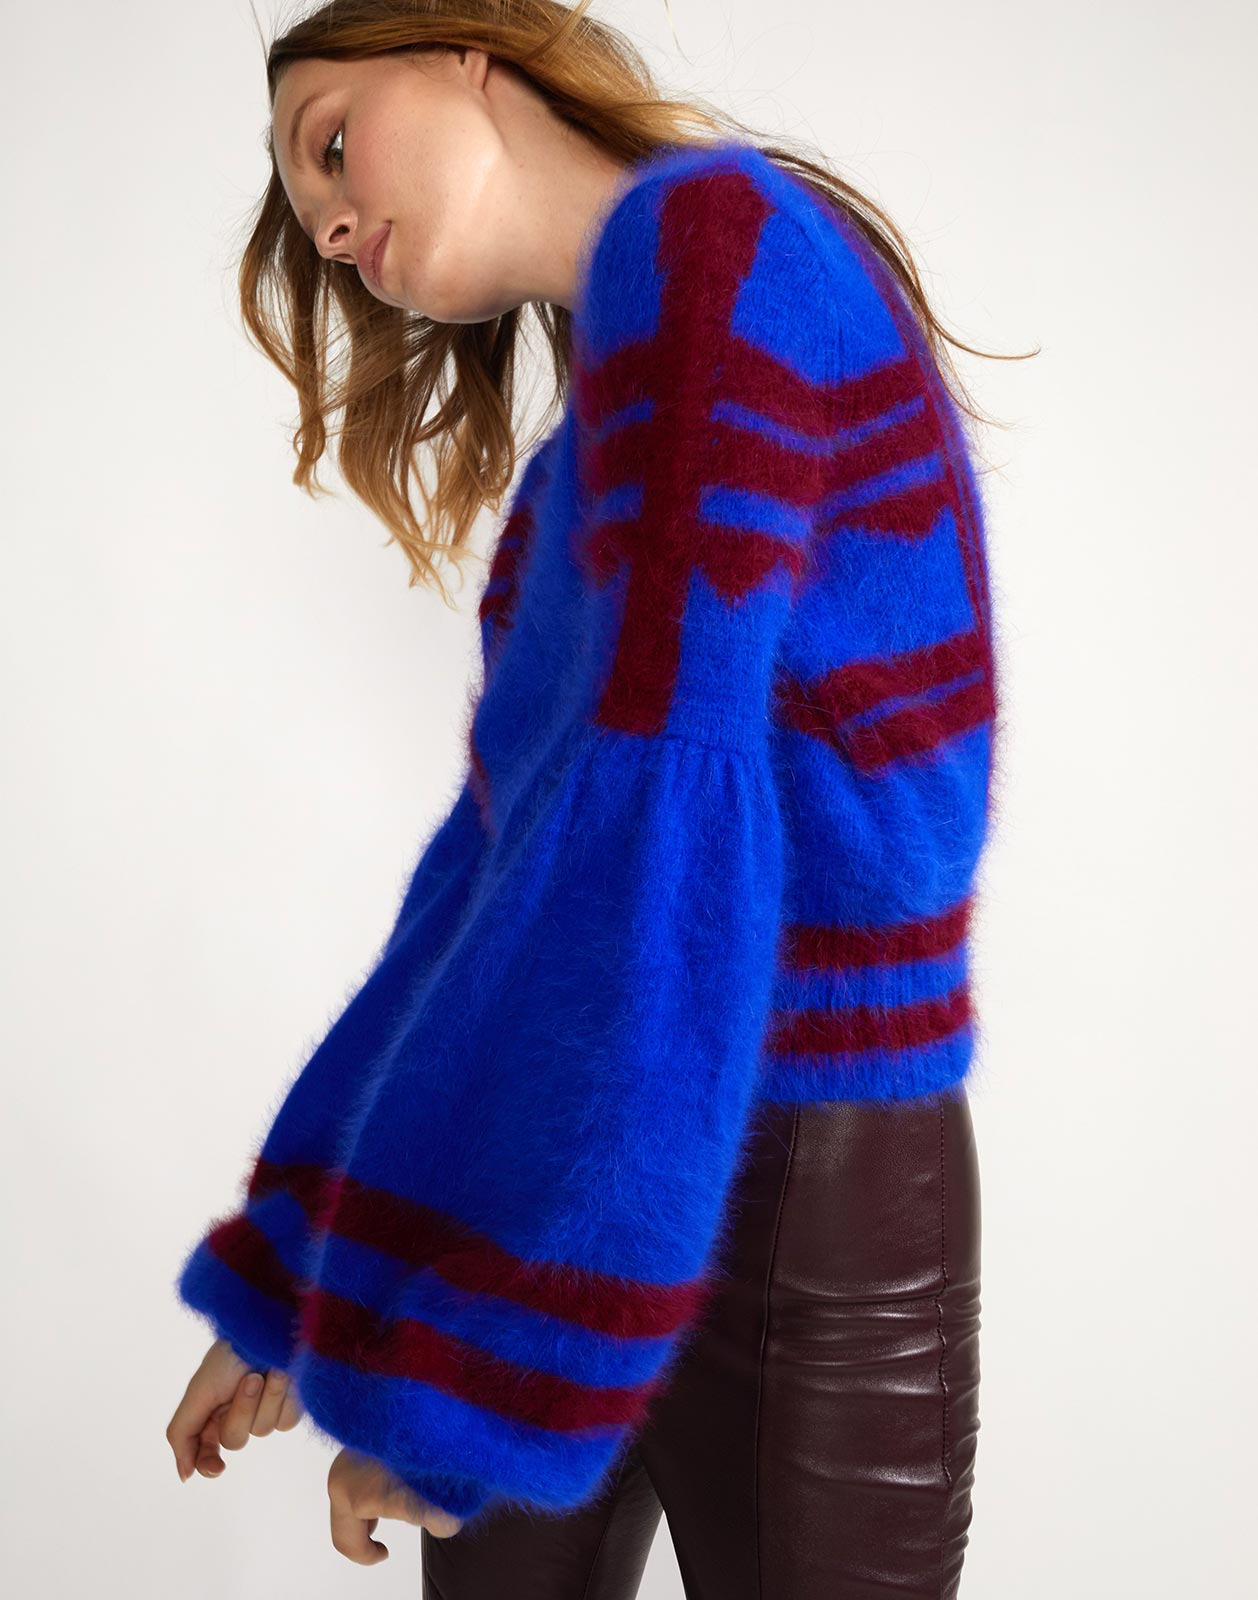 Alternate side view of Willa sweater with intarsia design